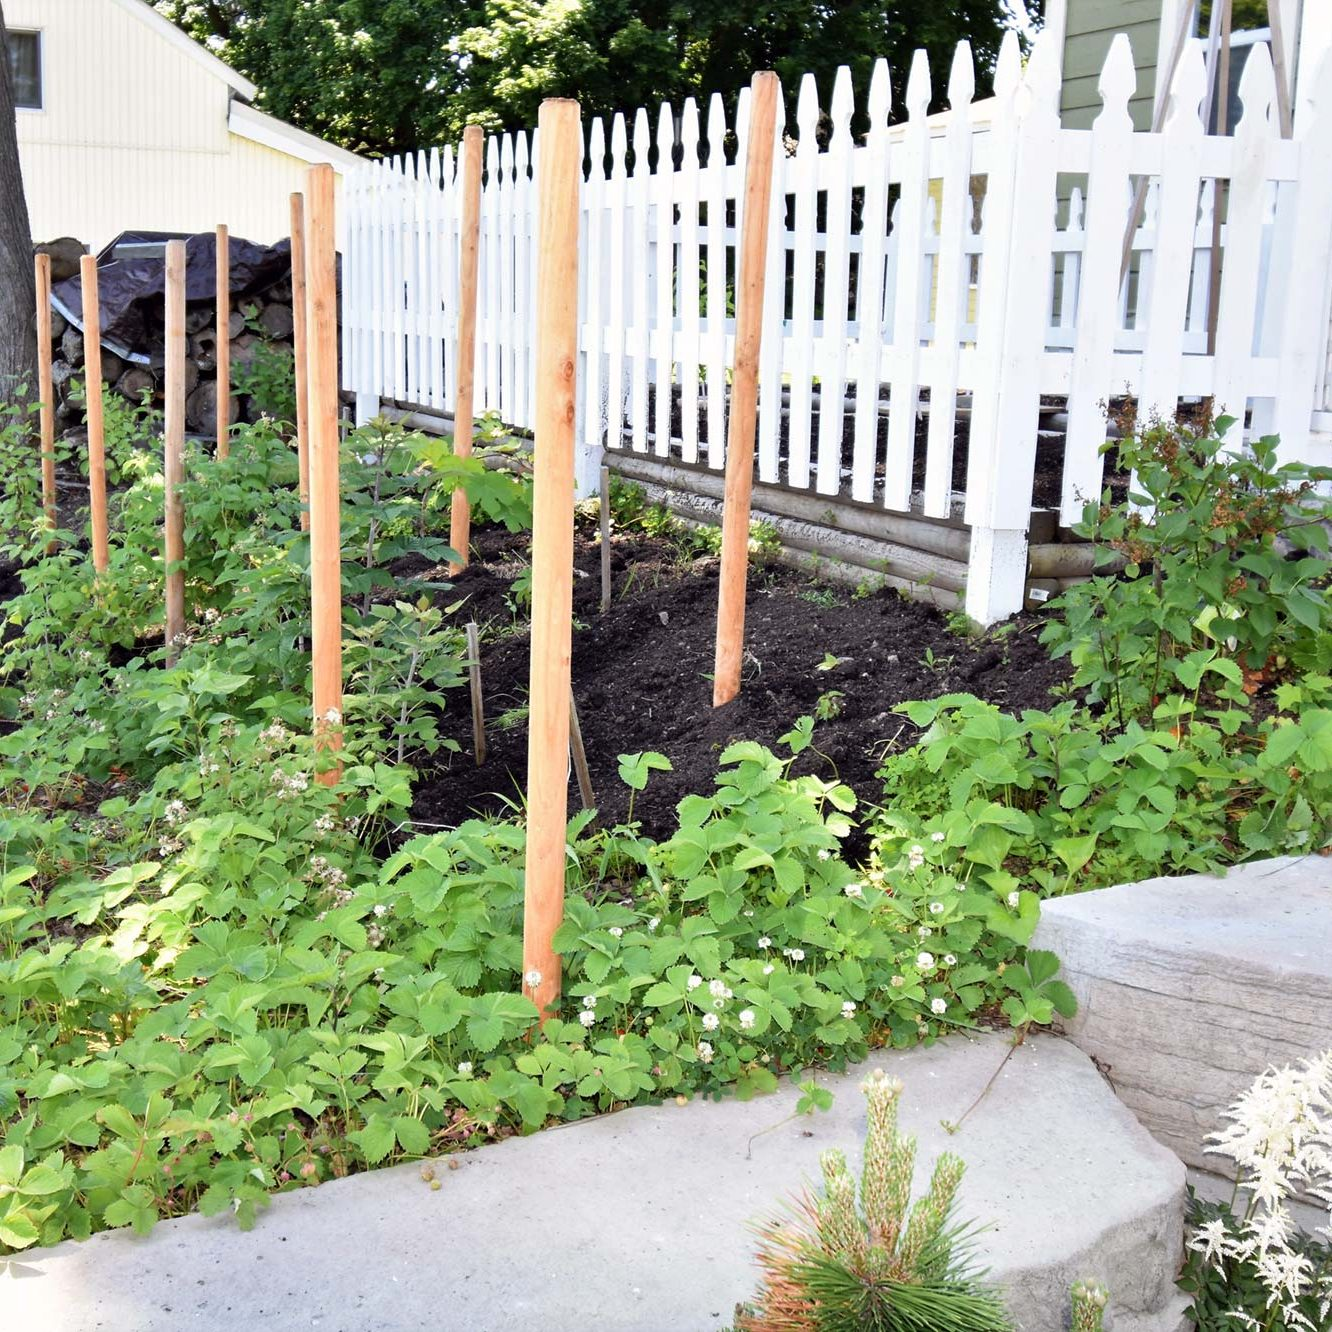 Berry Patch and Shade Garden